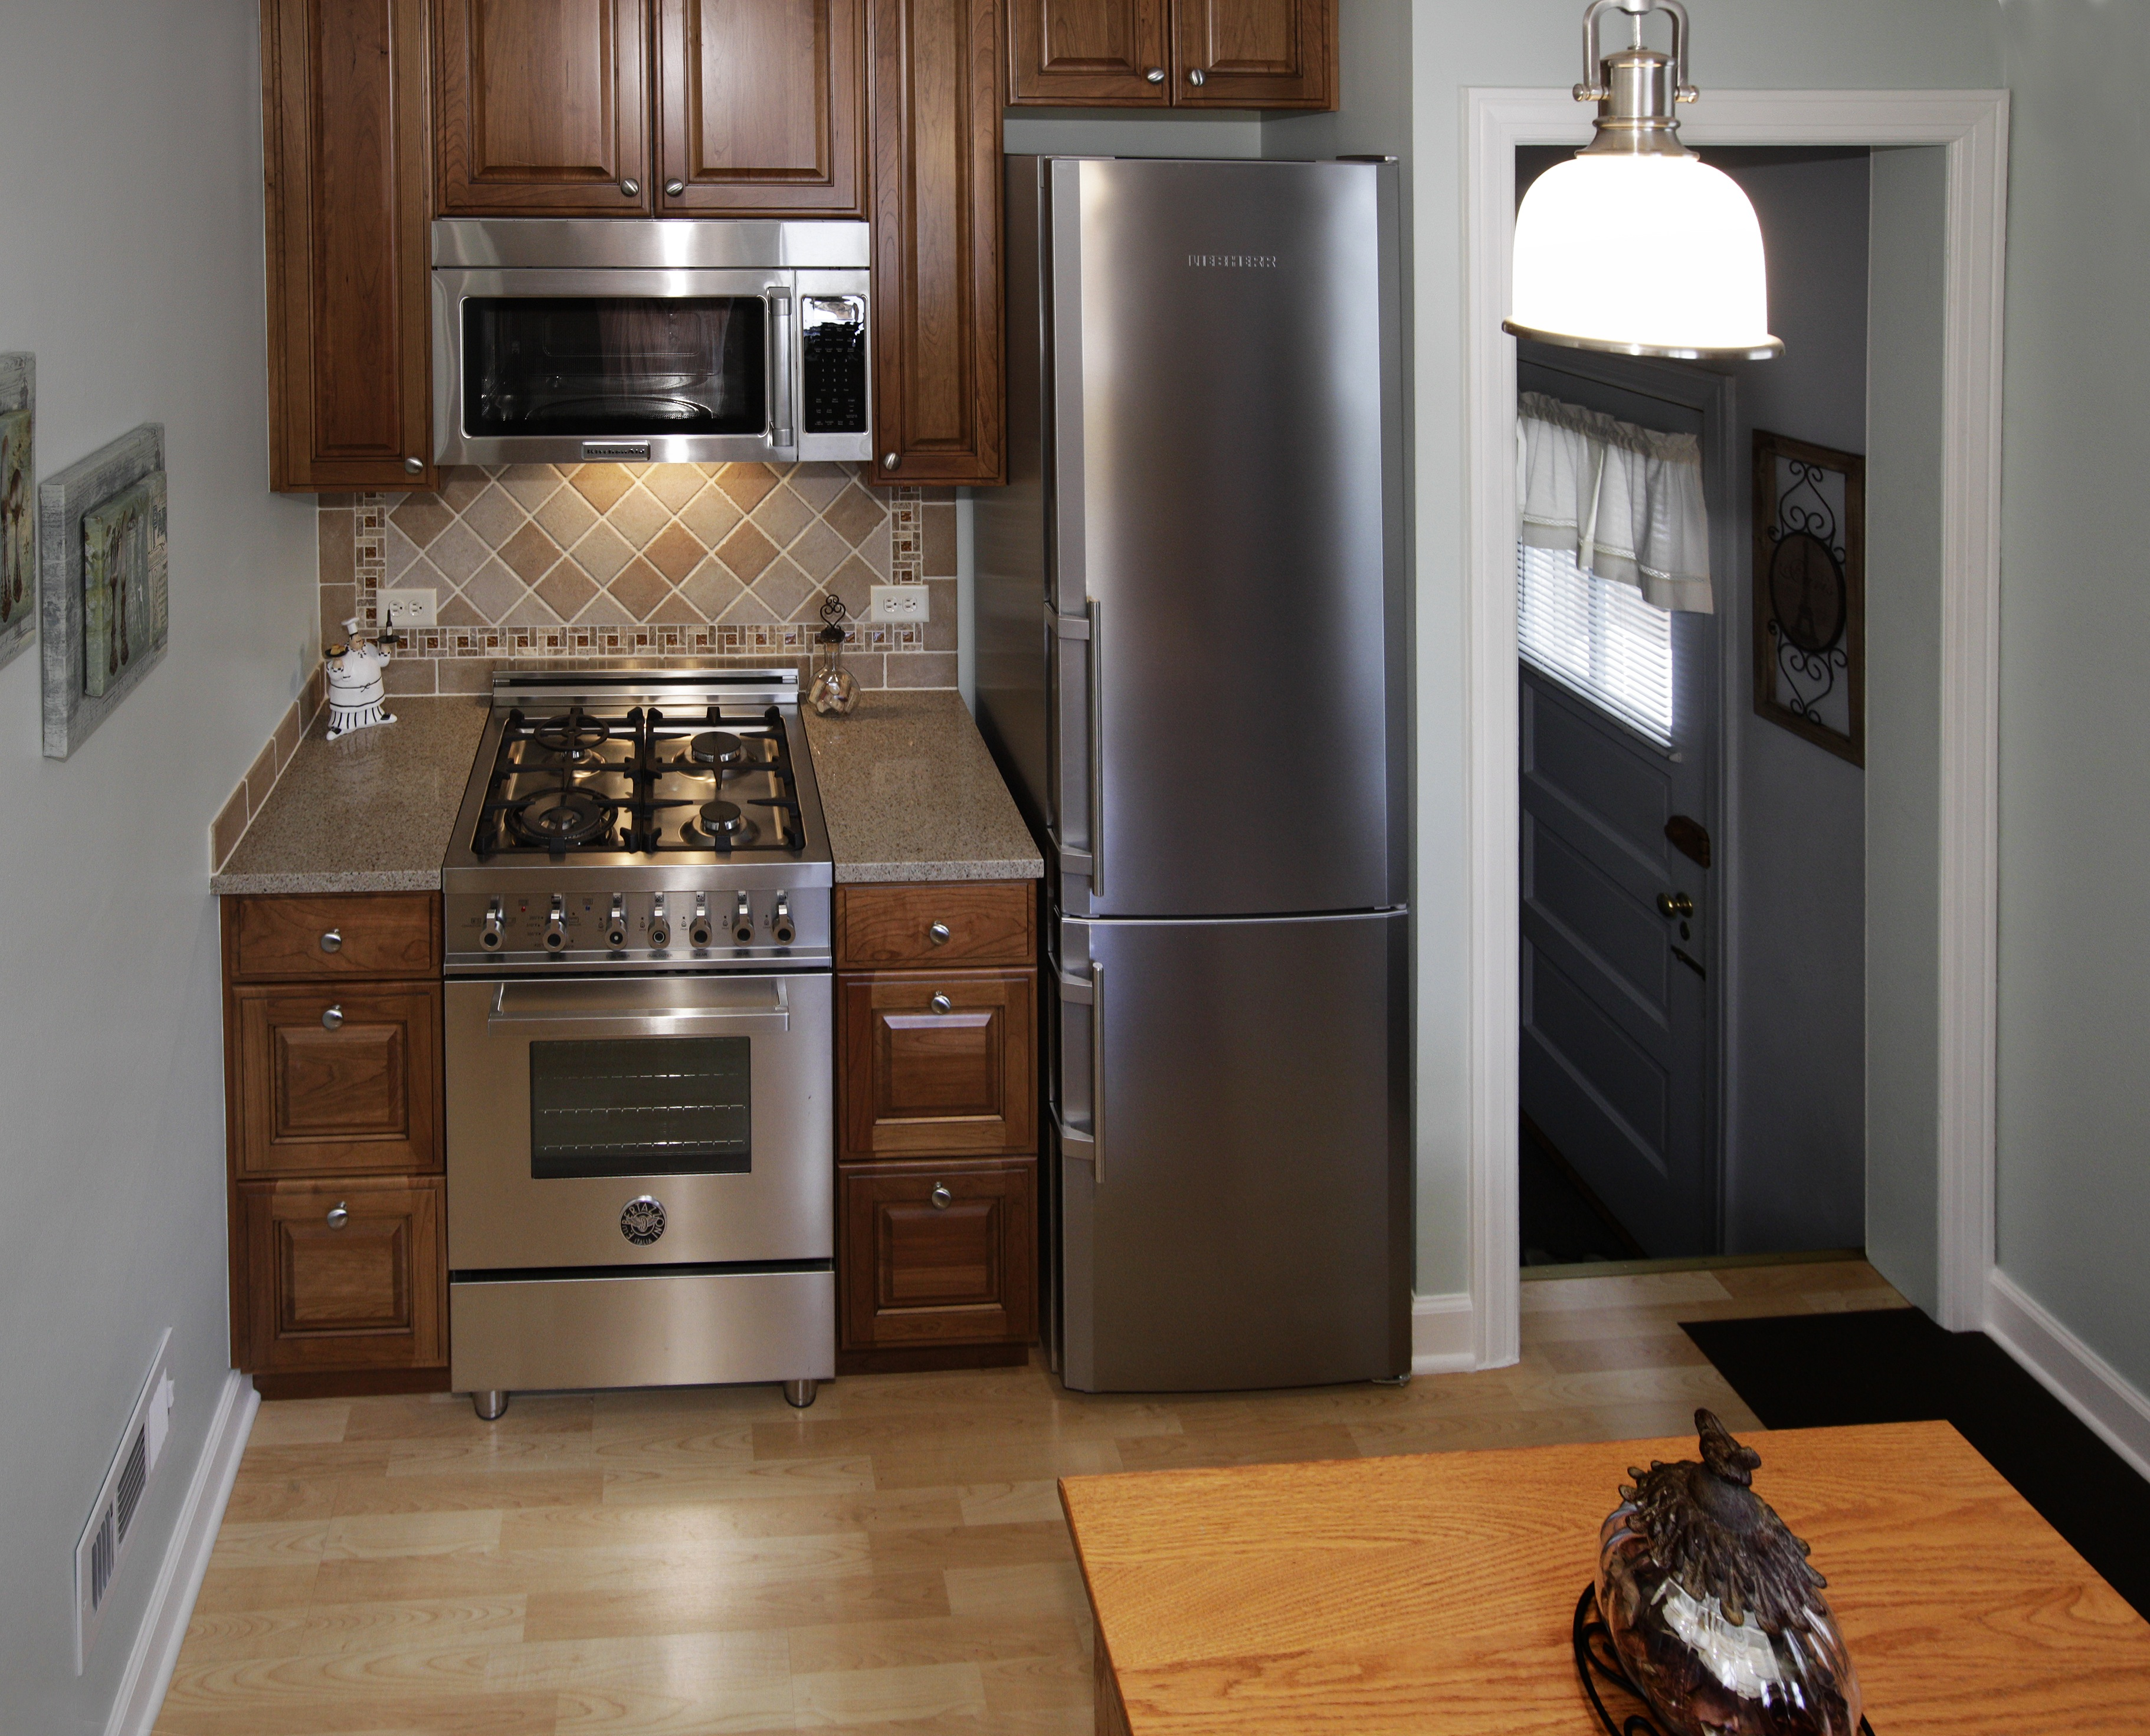 small kitchen remodel, elmwood park il - better kitchens